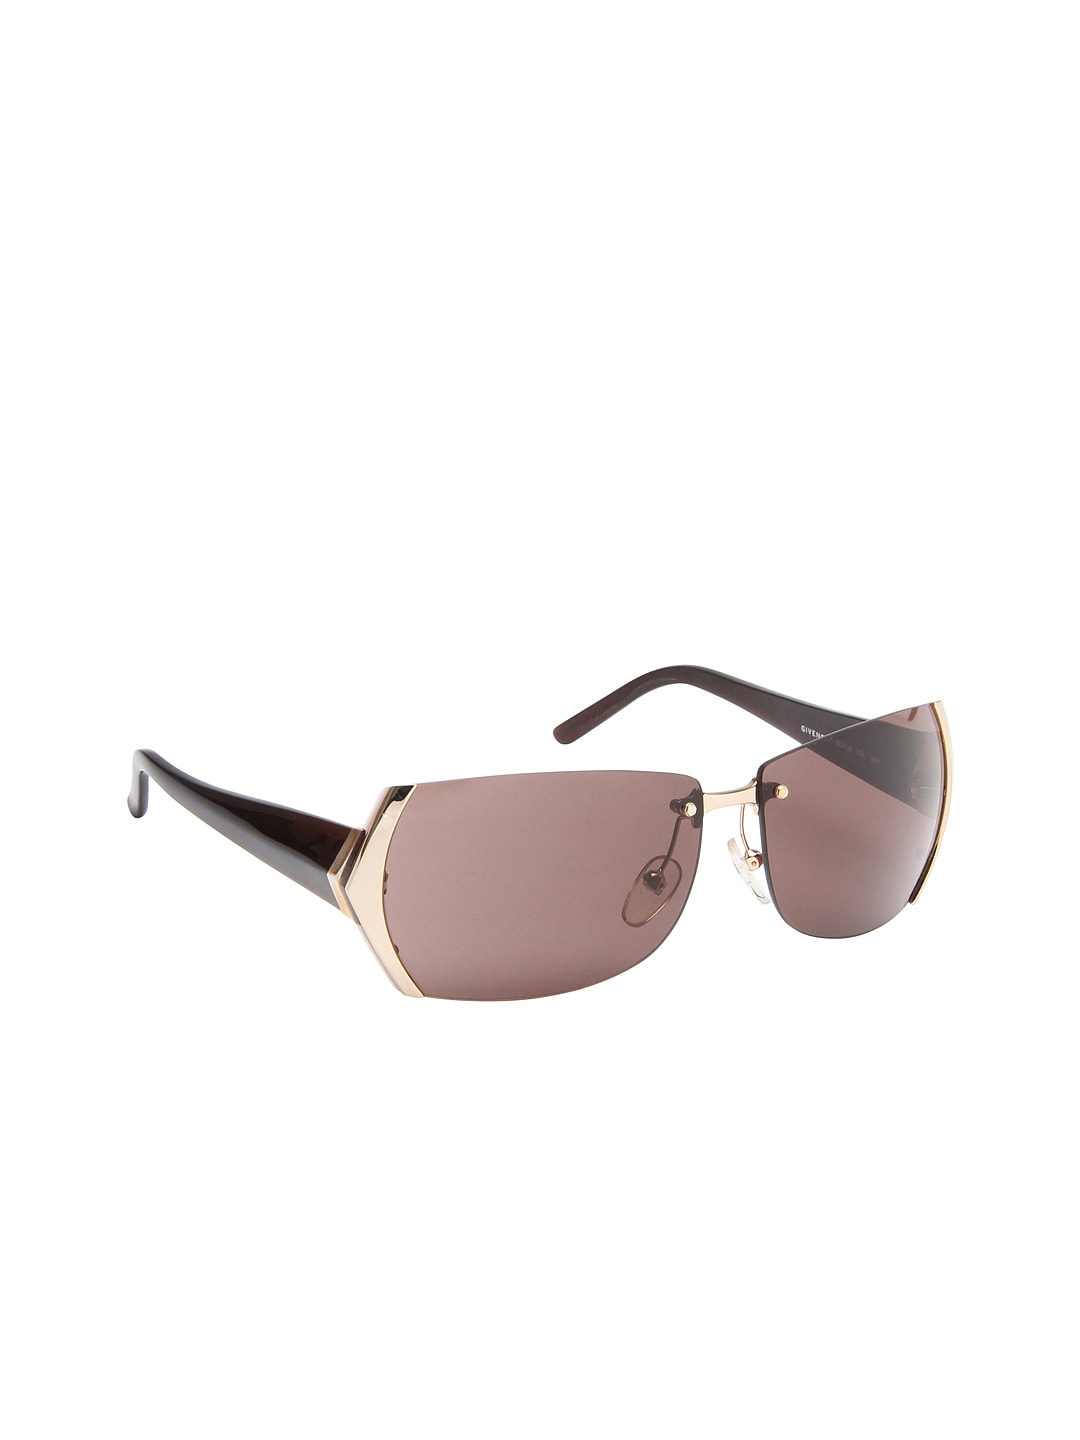 Givenchy Givenchy Women Sunglasses SGV 130 COL 300Y (Multicolor)